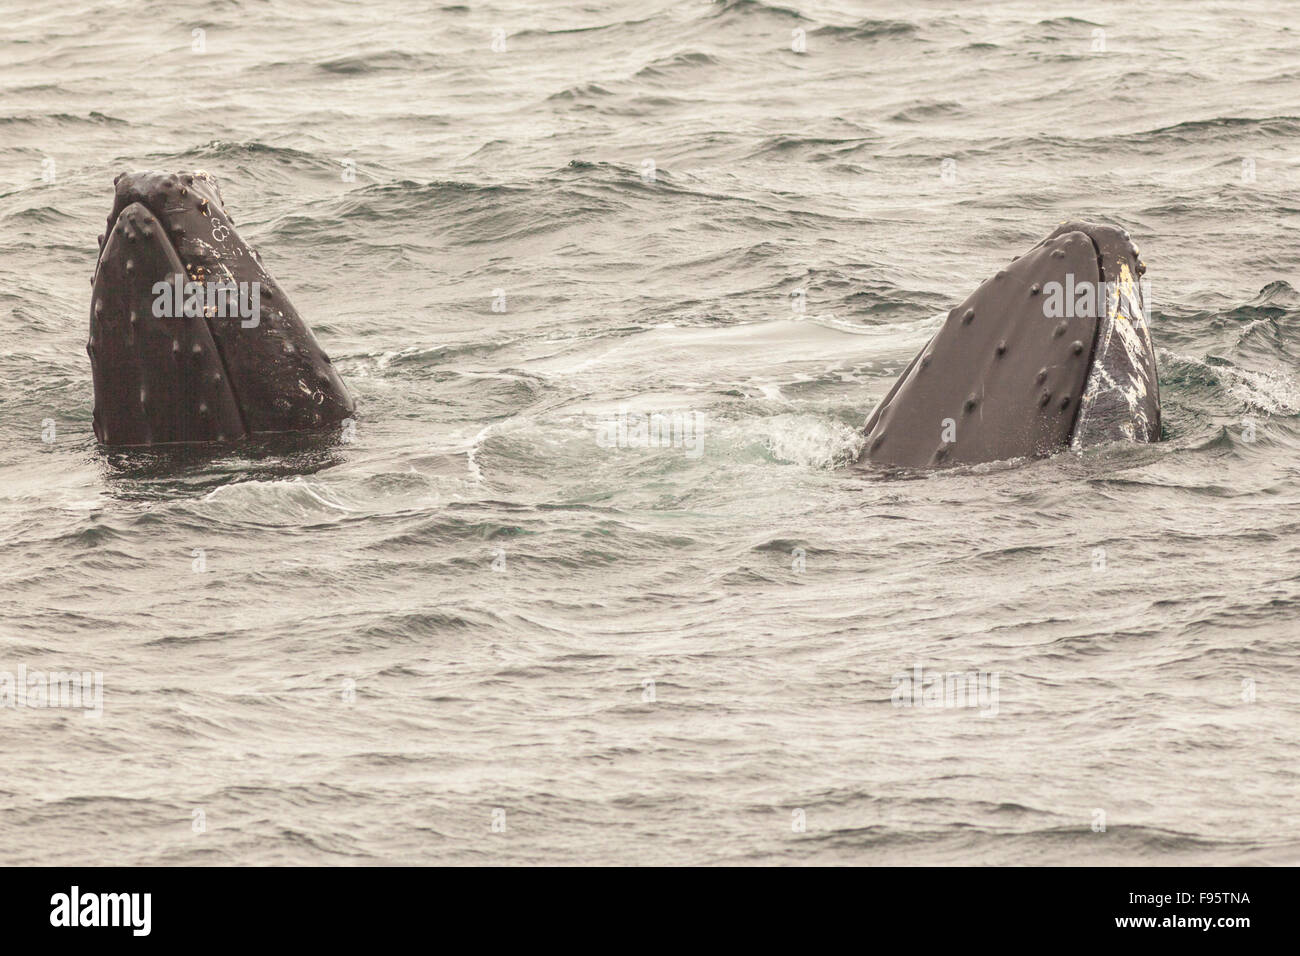 Humpback Whales spyhopping, (Megaptera novaeangliae), Witless Bay Ecological Reserve, Newfoundland, Canada - Stock Image